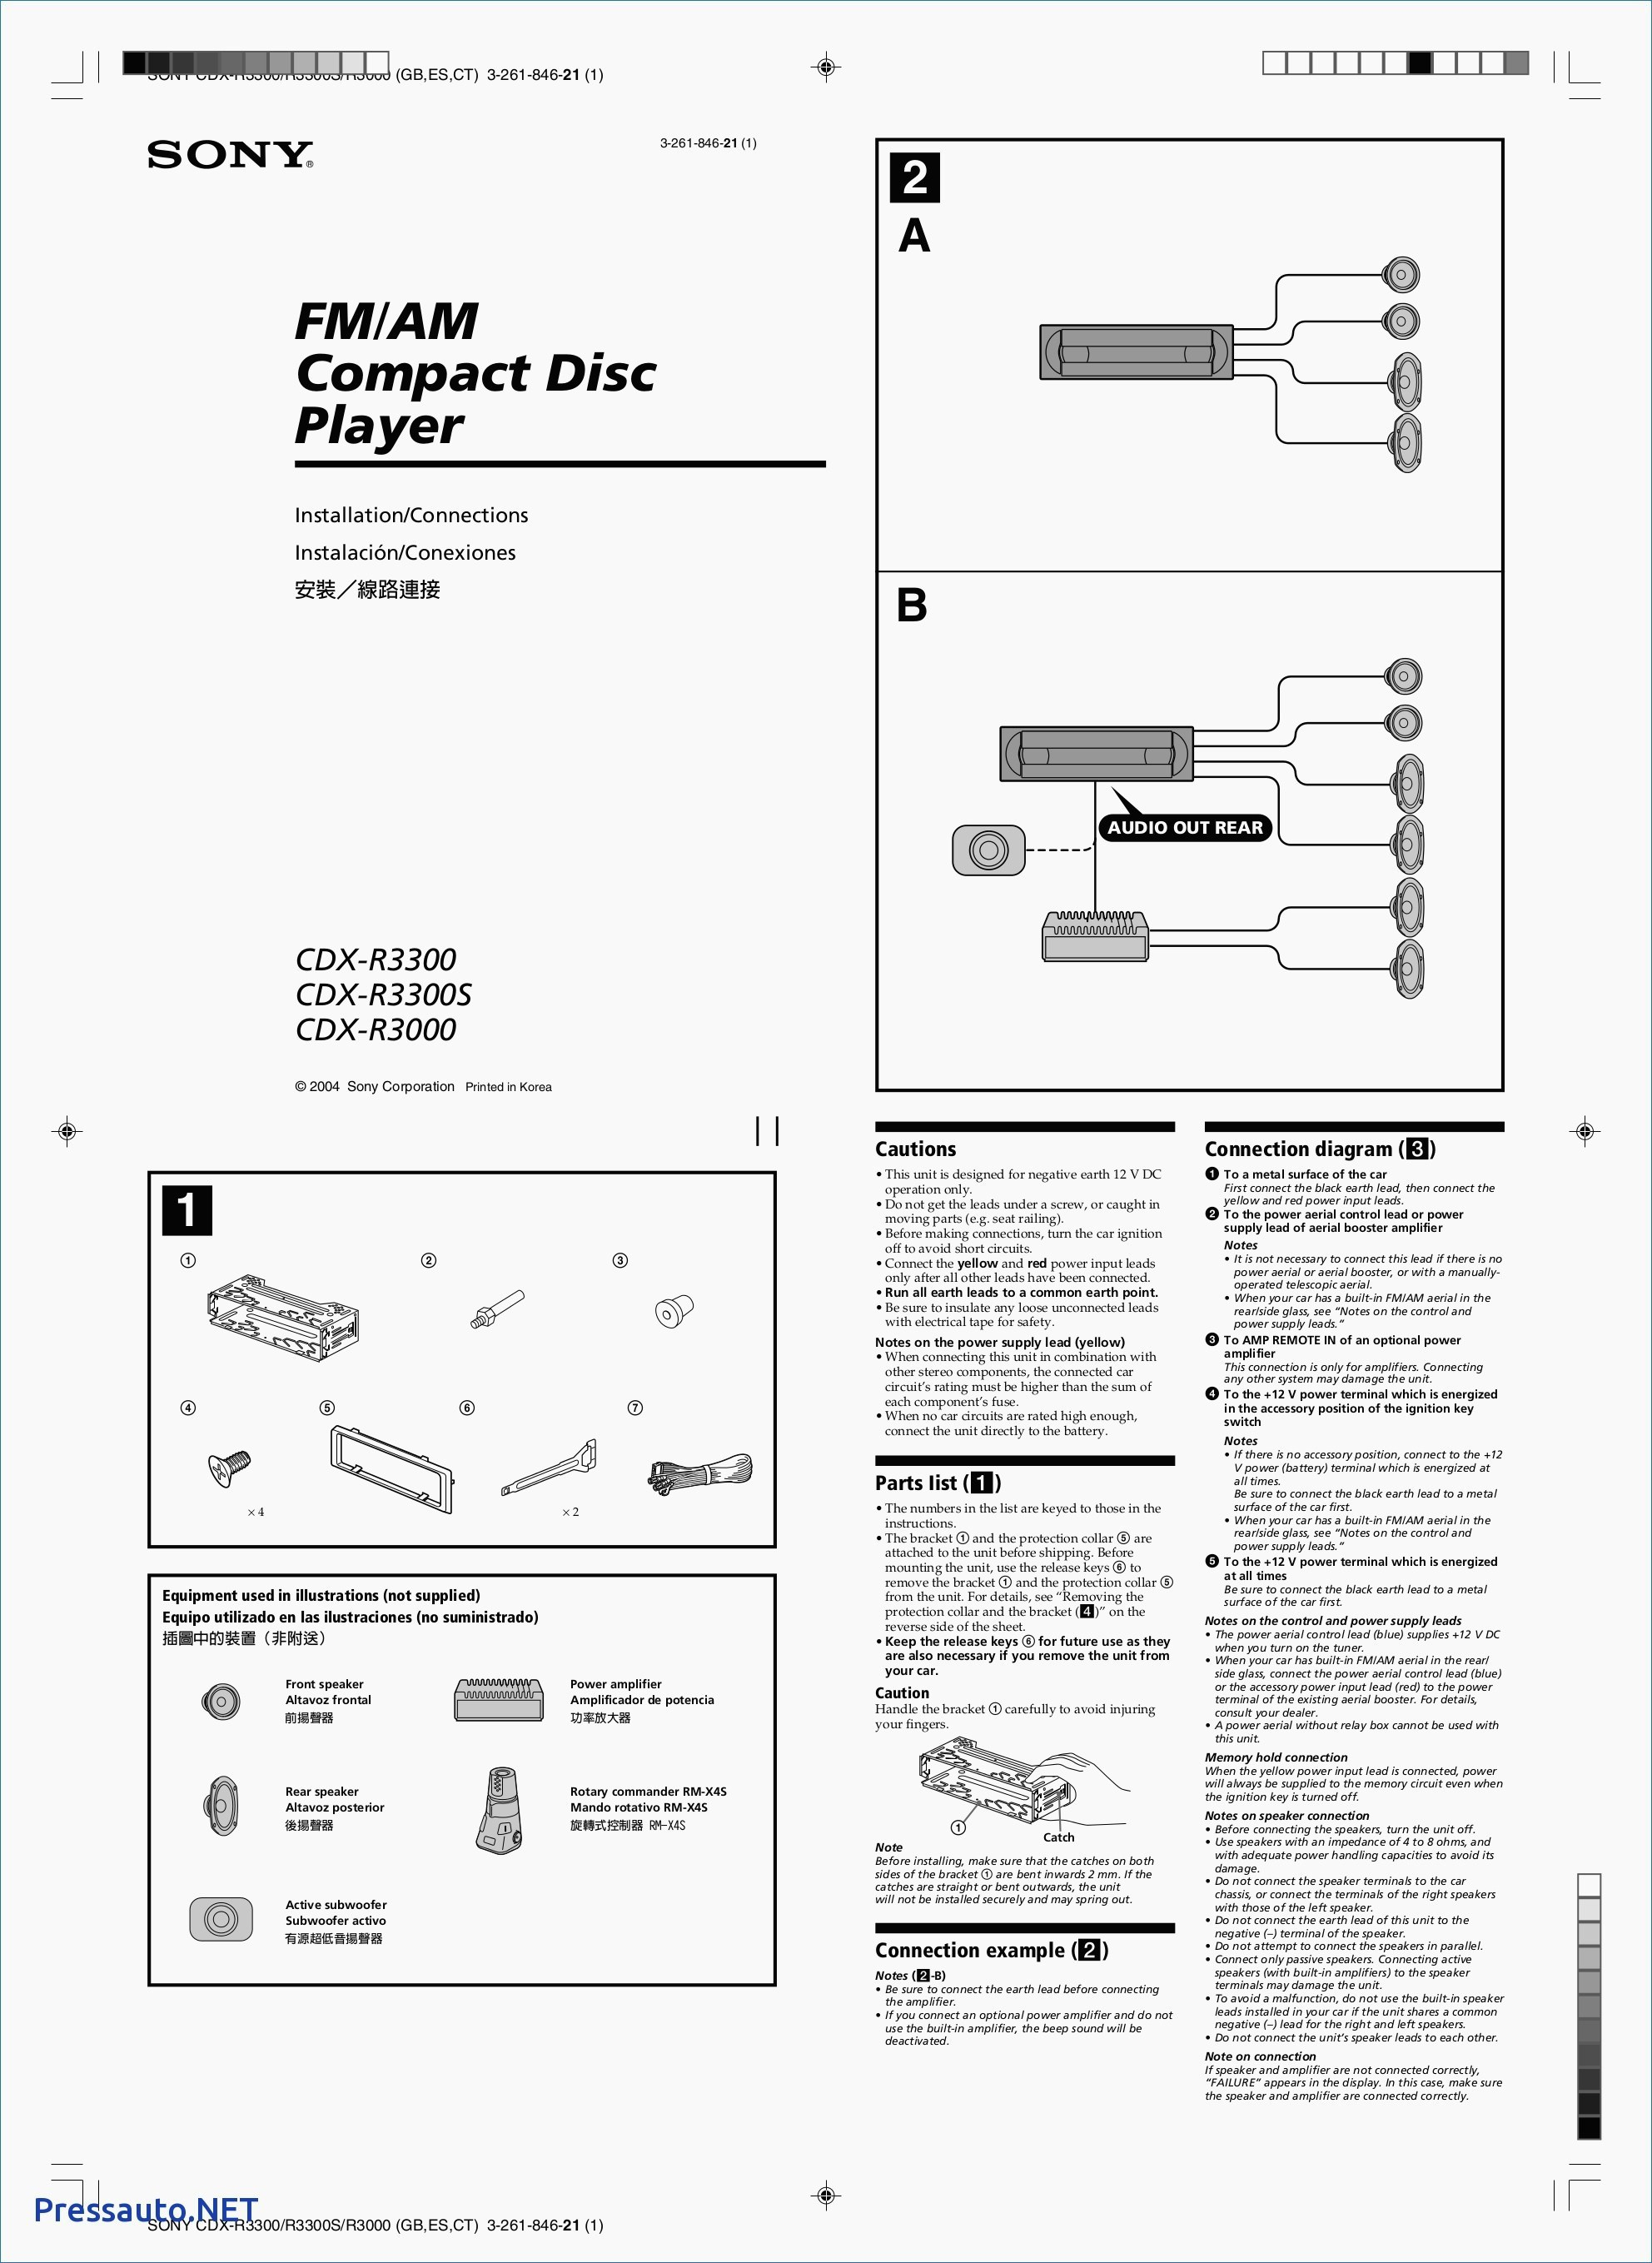 Sony Car Stereo Cdx Gt565Up Wiring Diagram | Wiring Diagram - Sony Cdx Gt565Up Wiring Diagram